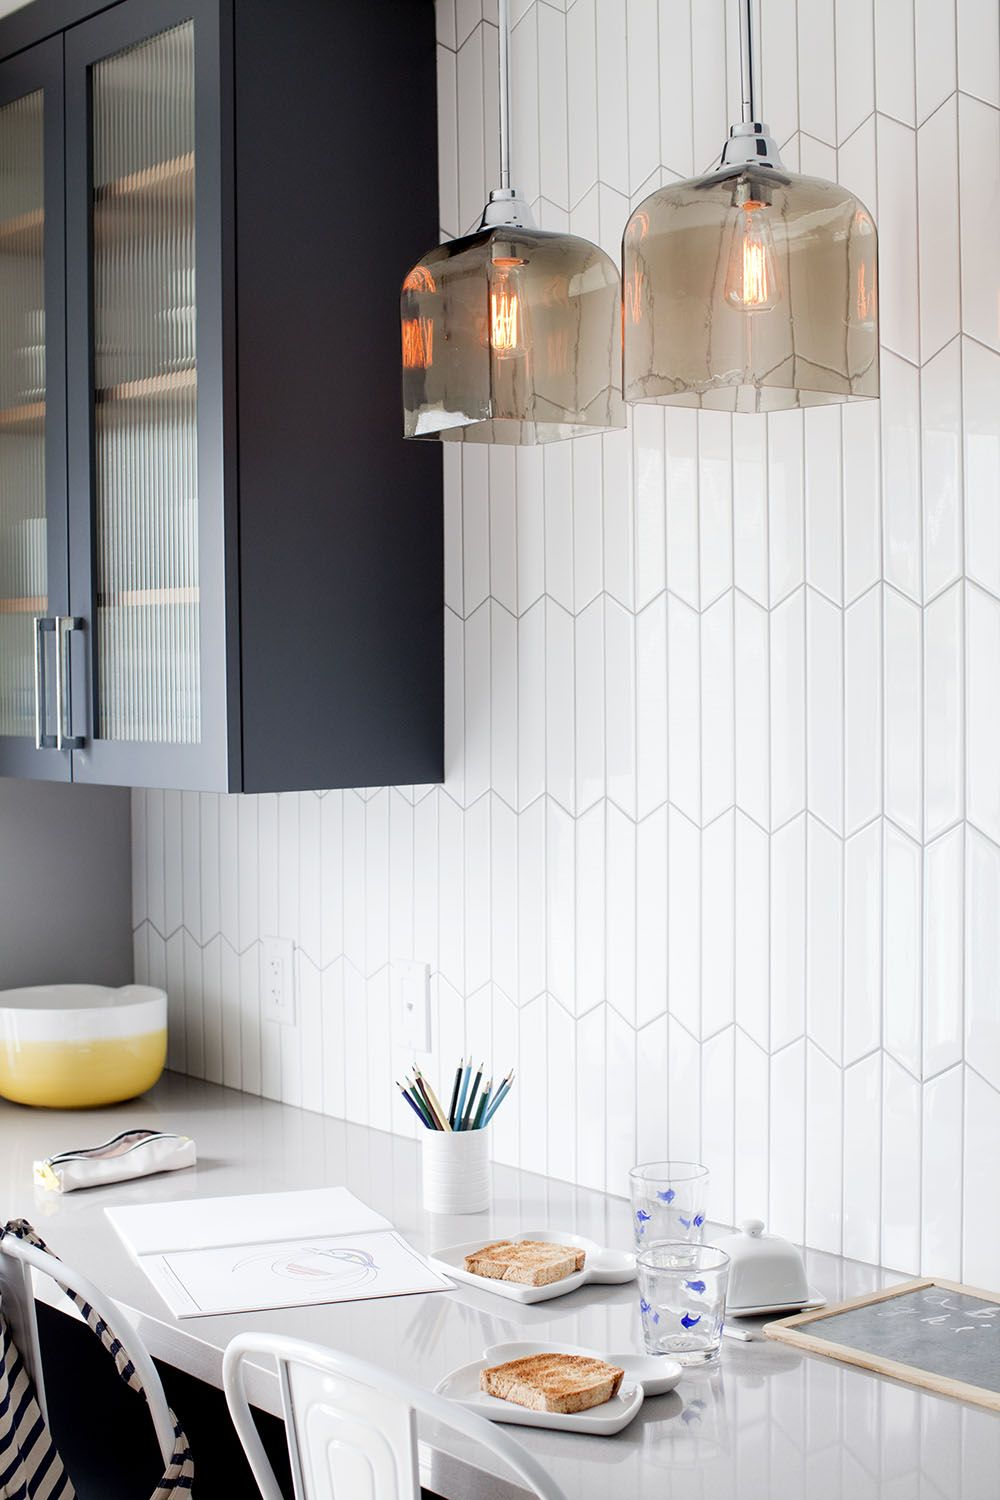 Bringing A Contemporary Homey Feel To Our Interiors Looking Forward Seeing The Chevron Tiles In Clinic Bathroom